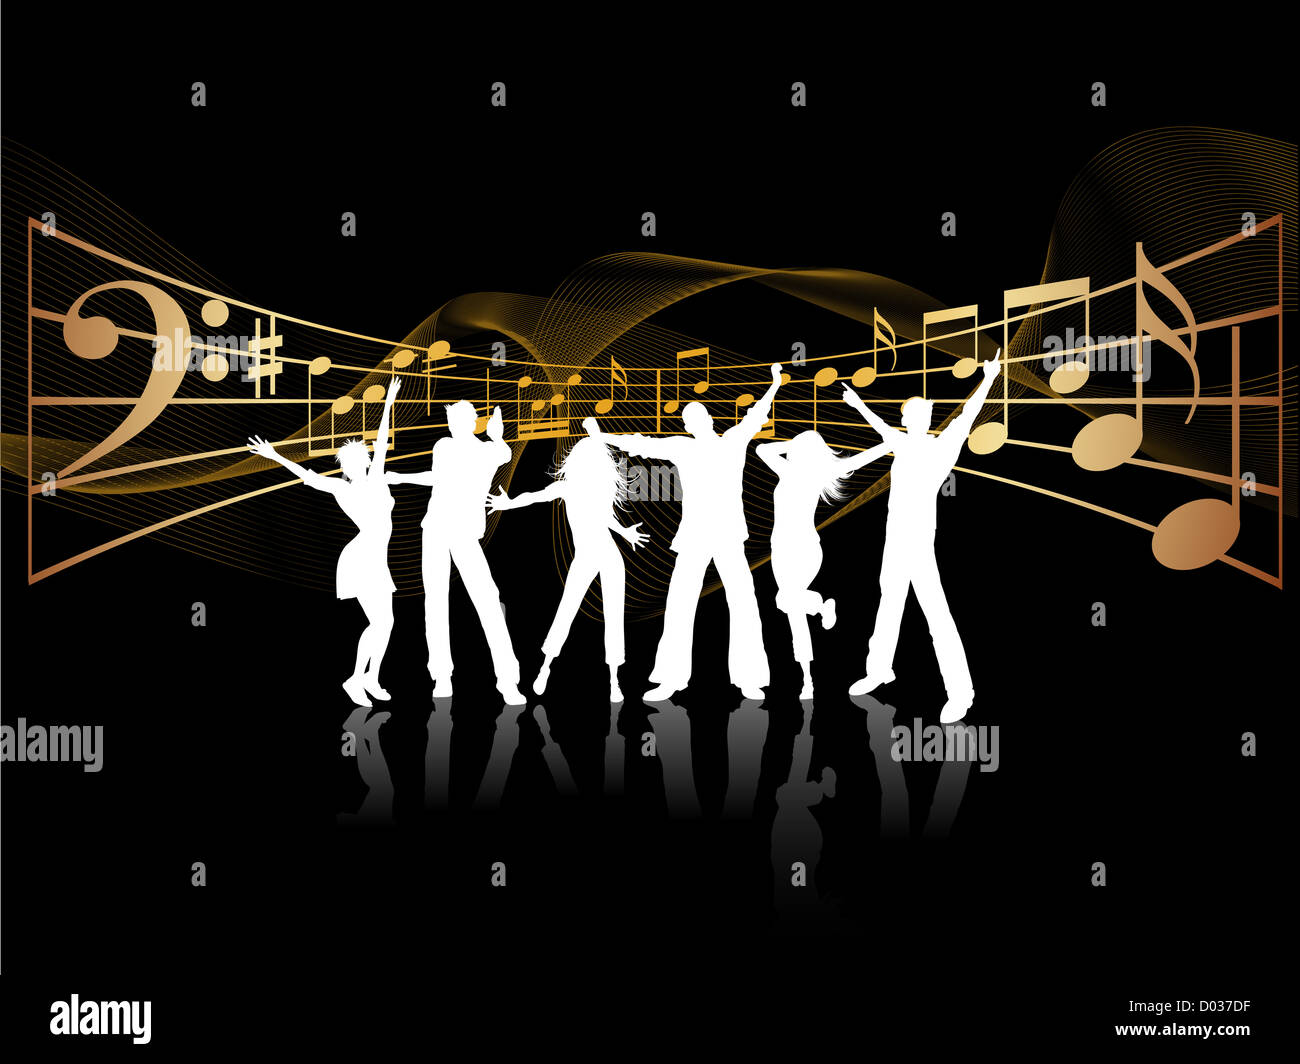 Silhouette Dance Music Abstract Background: Silhouettes Of People Dancing On Music Background Stock